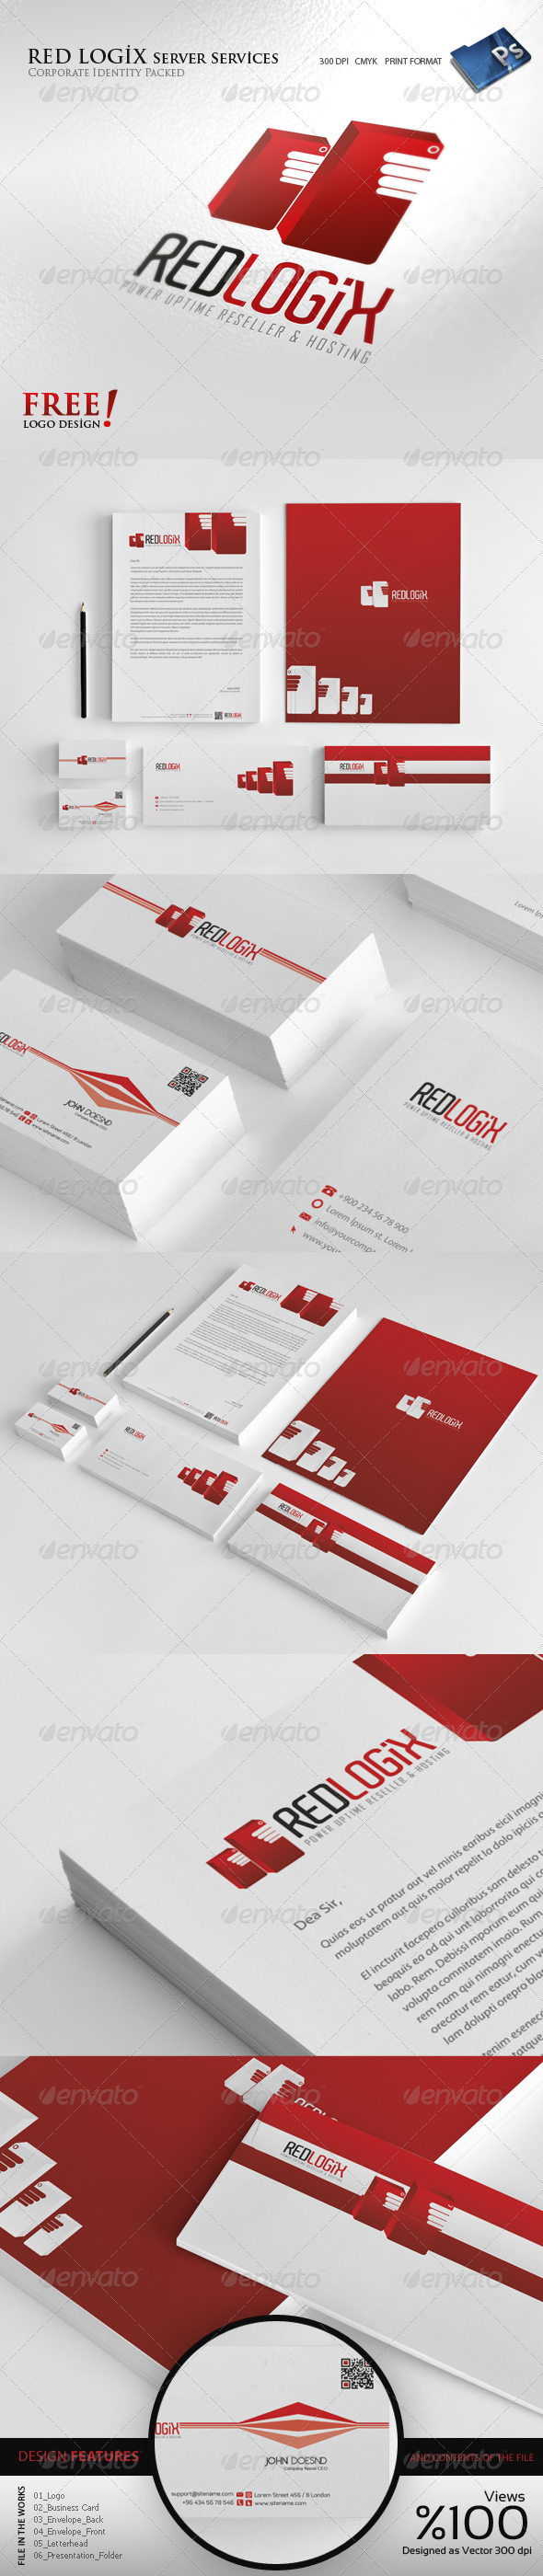 RedLogix Hosting - Corporate identity - Stationery Print Templates